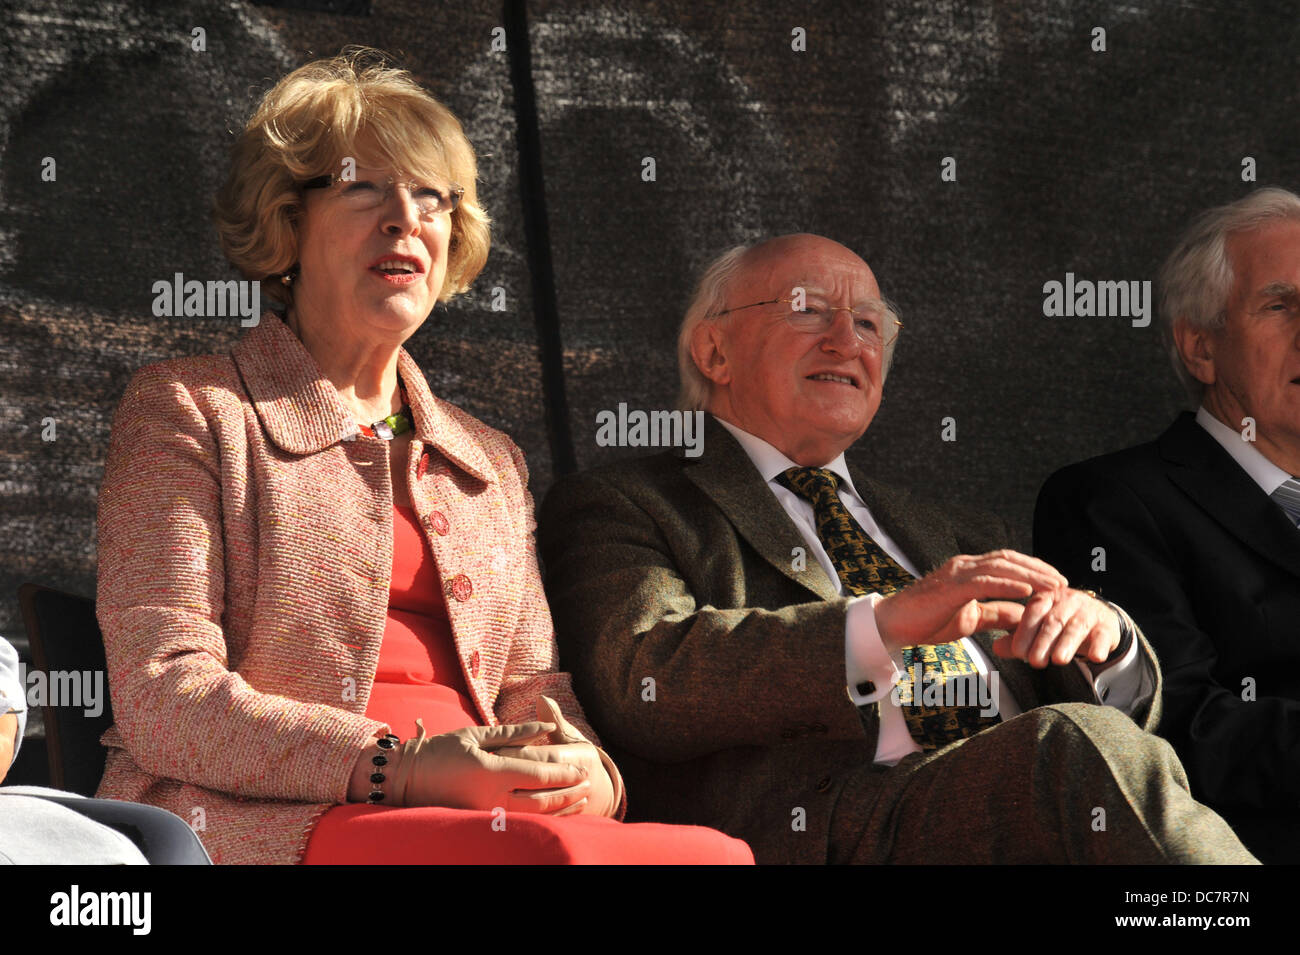 Derry / Londonderry, Northern Ireland, UK. 10th Aug, 2013. Irish President Michael D. Higgins (right) and his wife - Stock Image